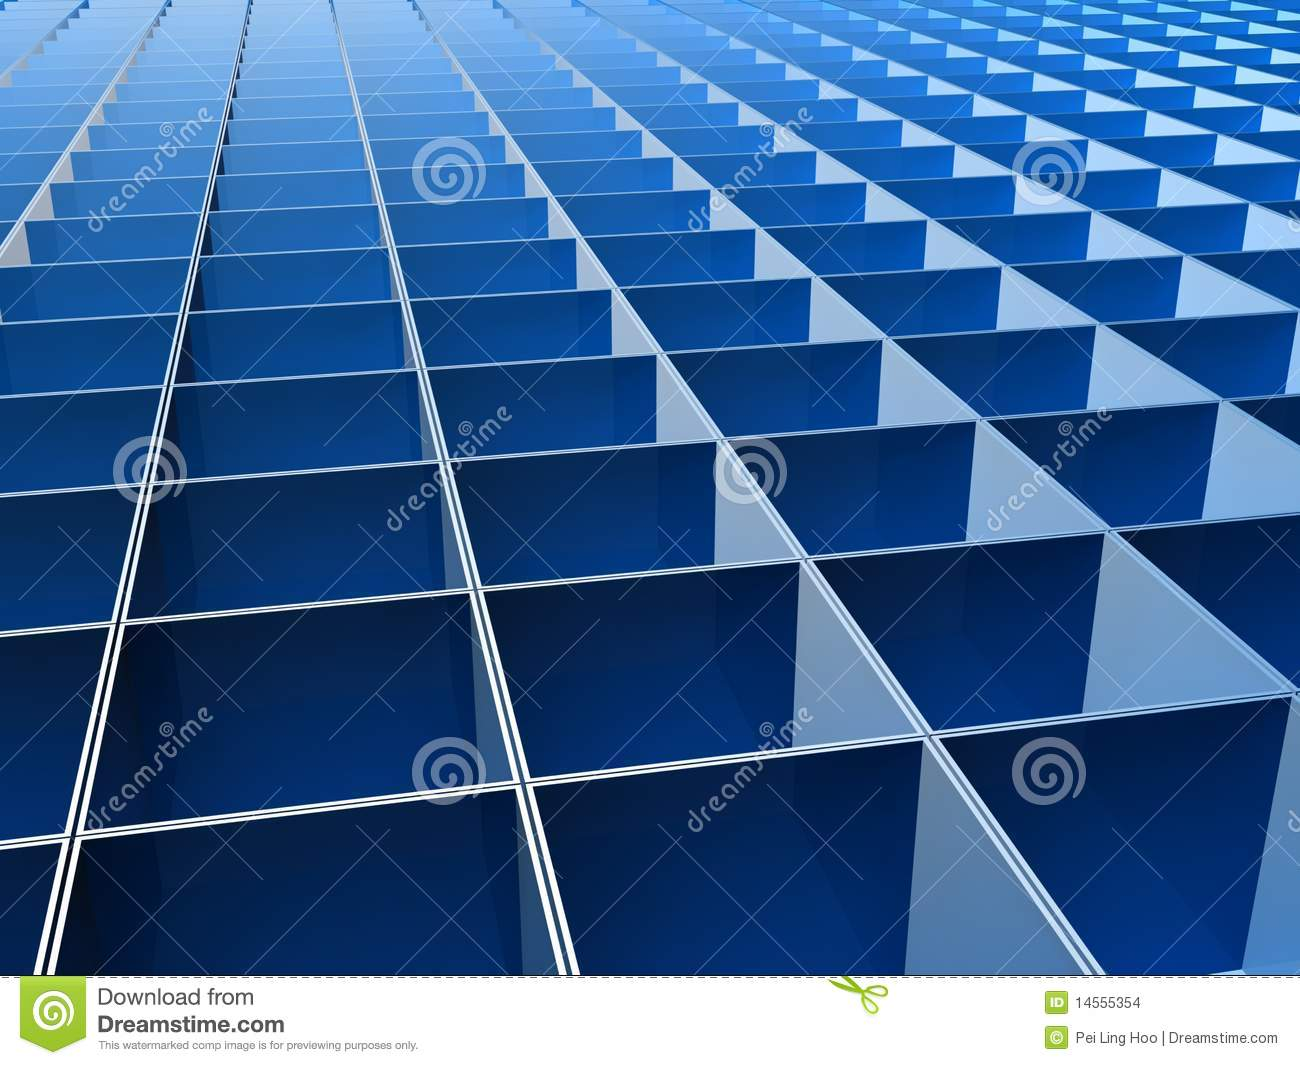 Blue square pattern background - photo#13